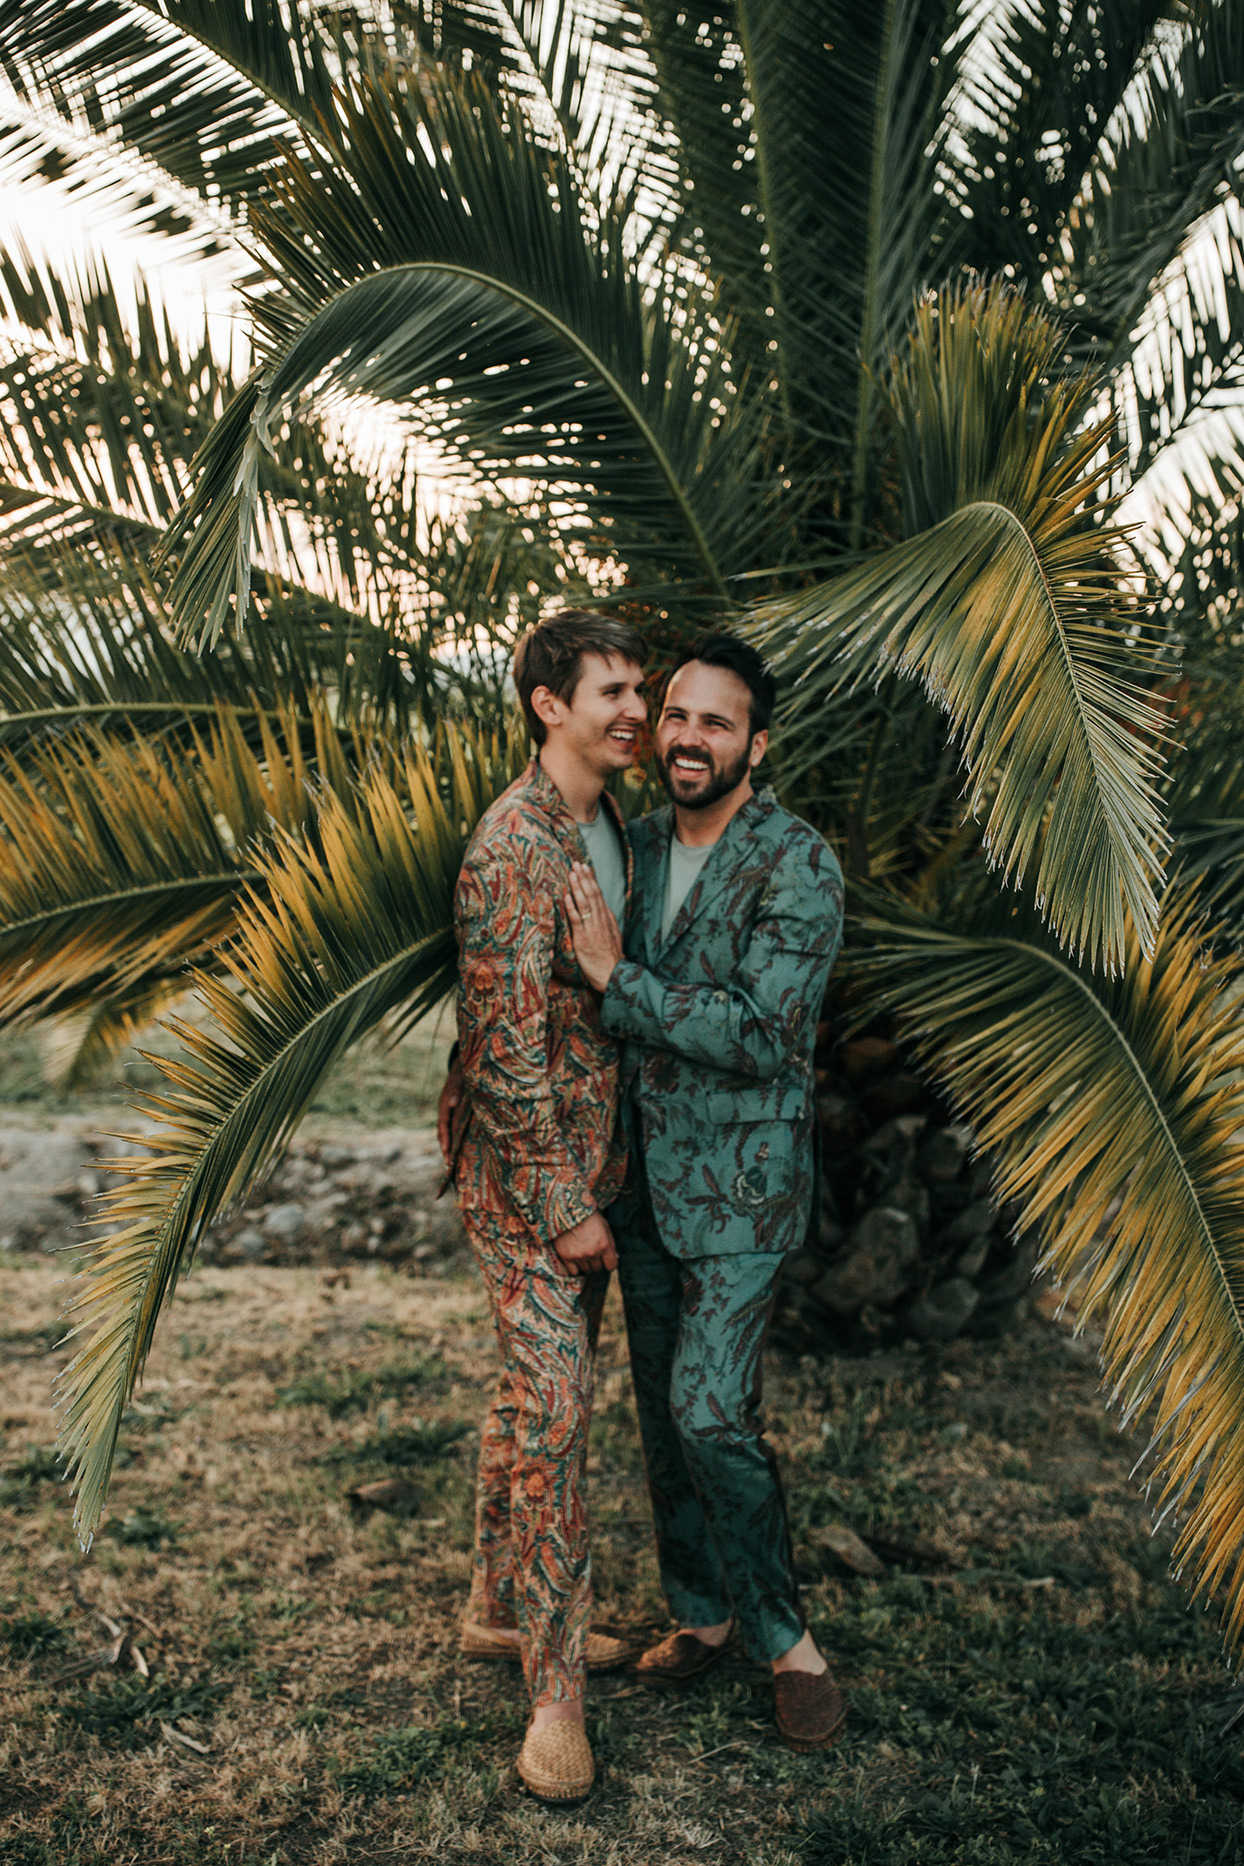 austin alex wedding couple wearing patterned suits in front of palm trees